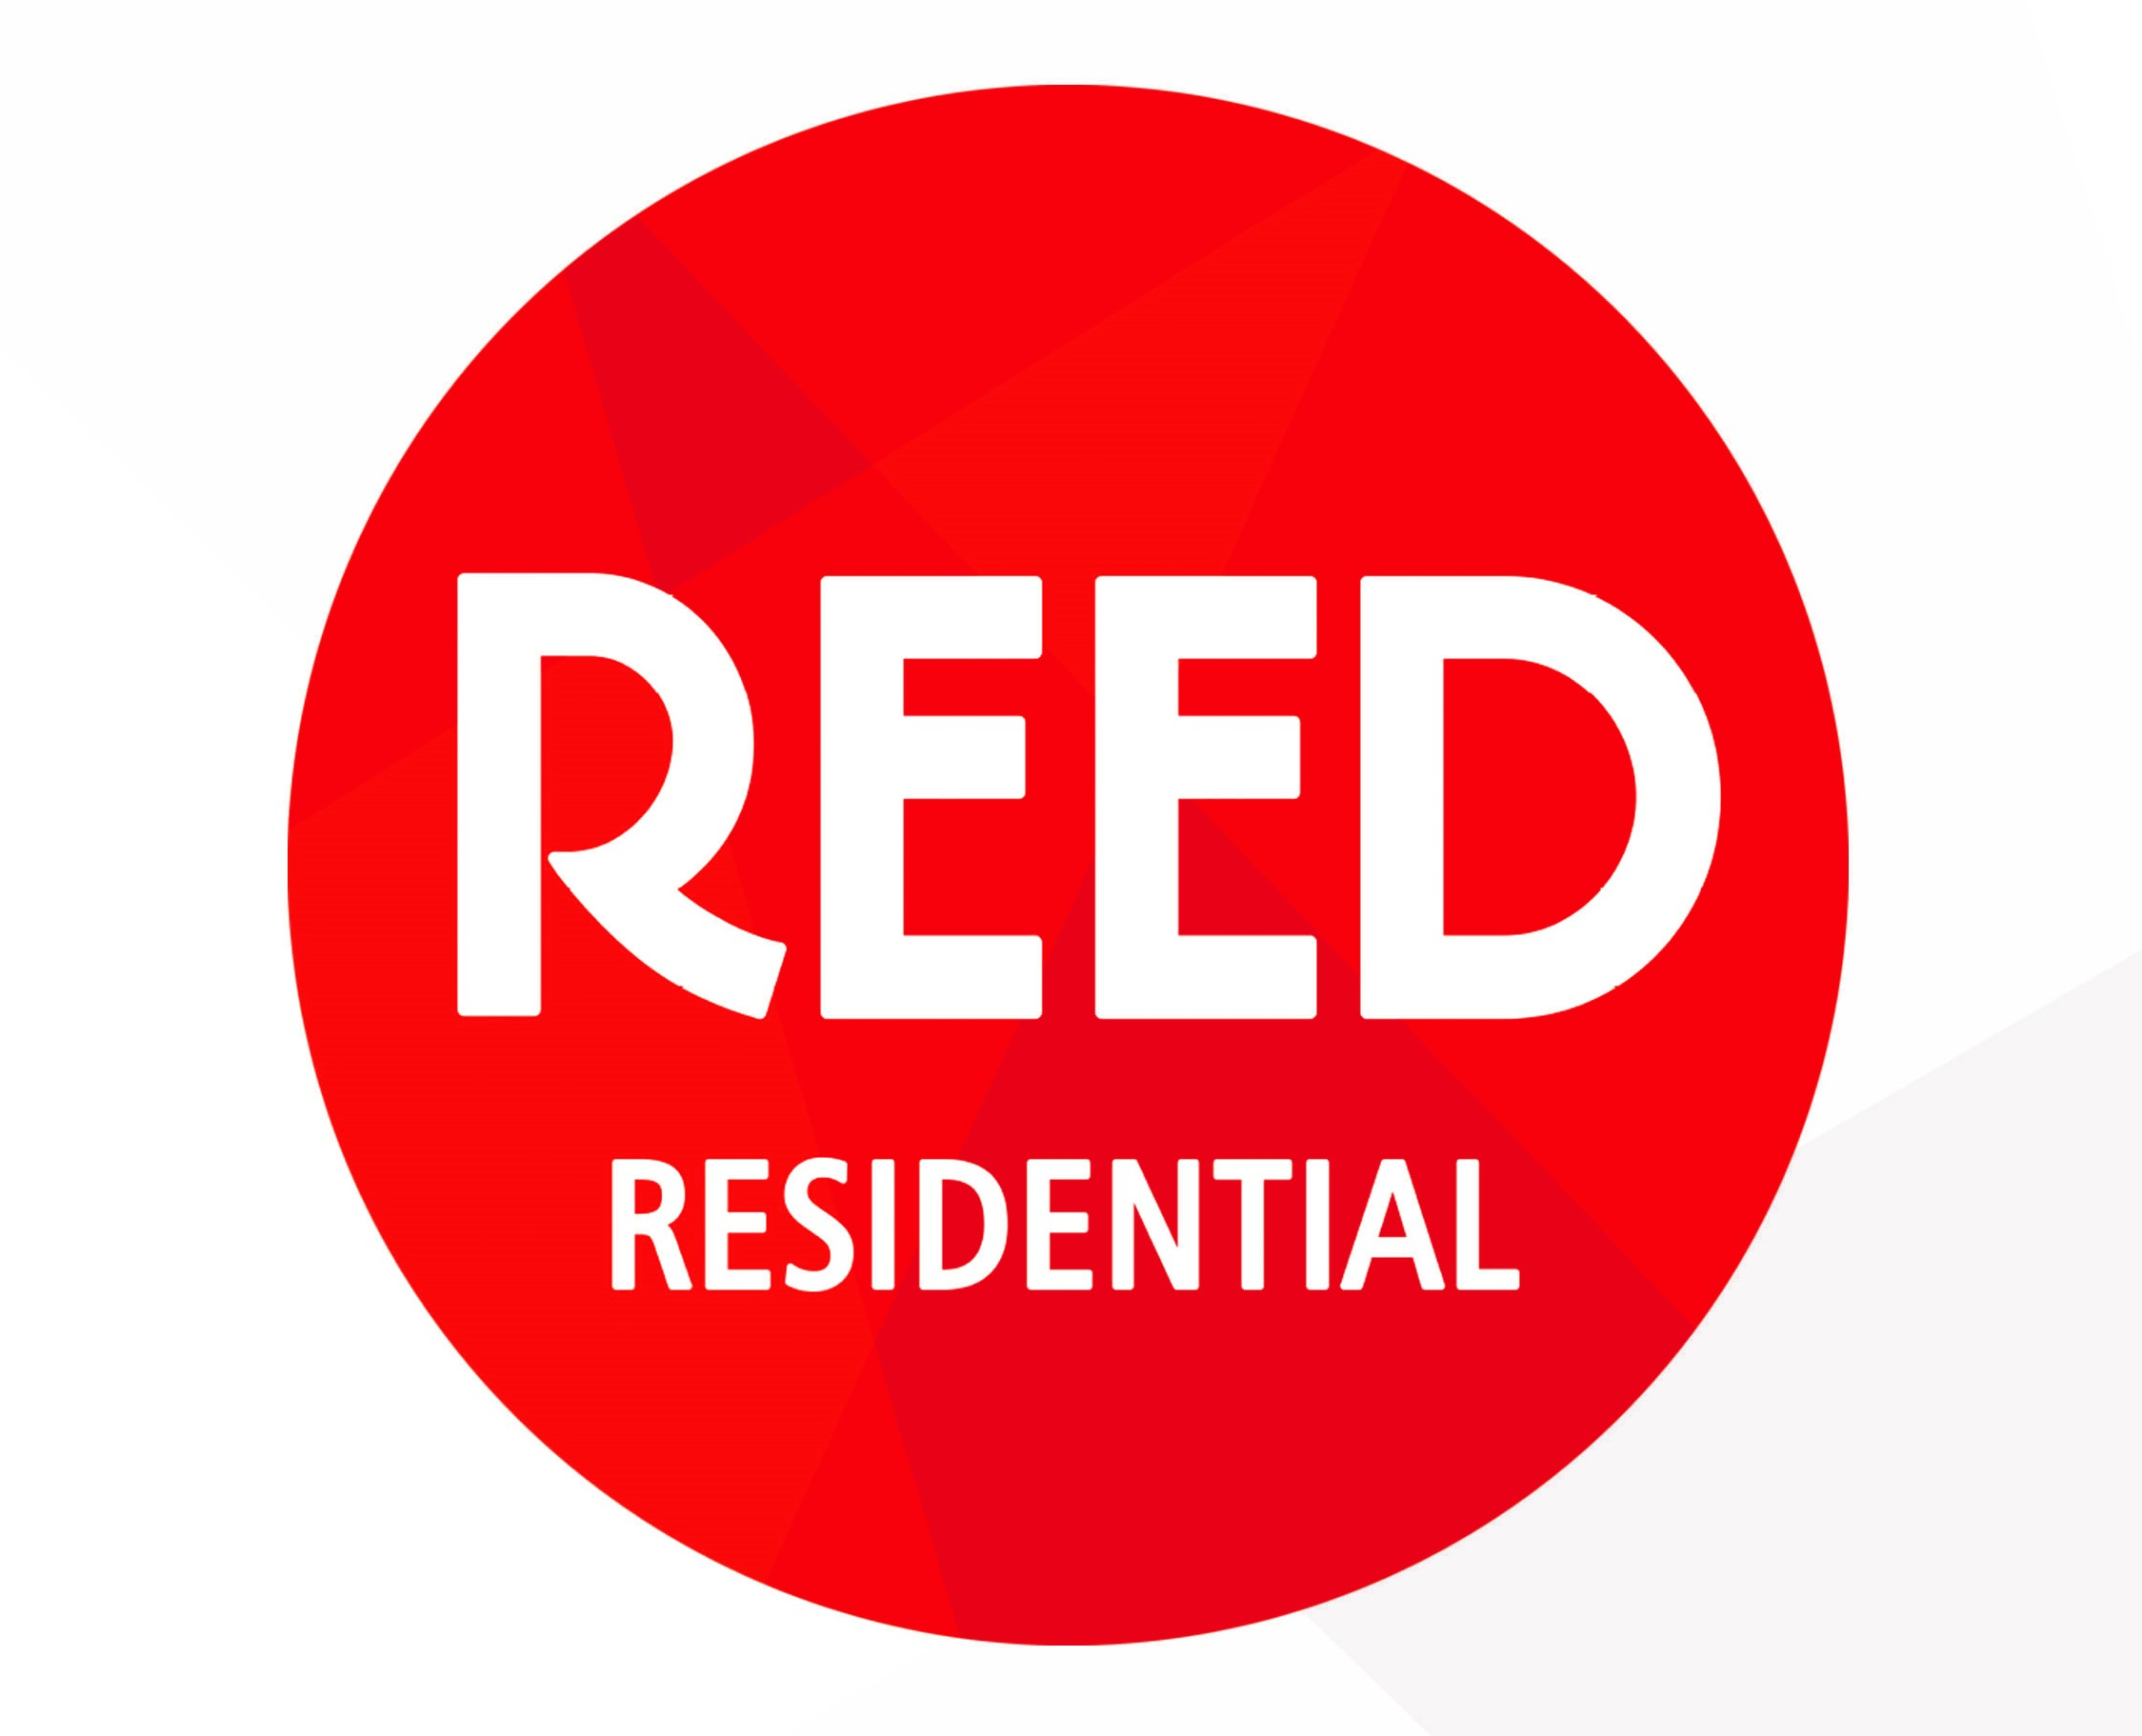 Reed Residential (Westcliff on Sea) : Letting agents in Nottingham Nottinghamshire